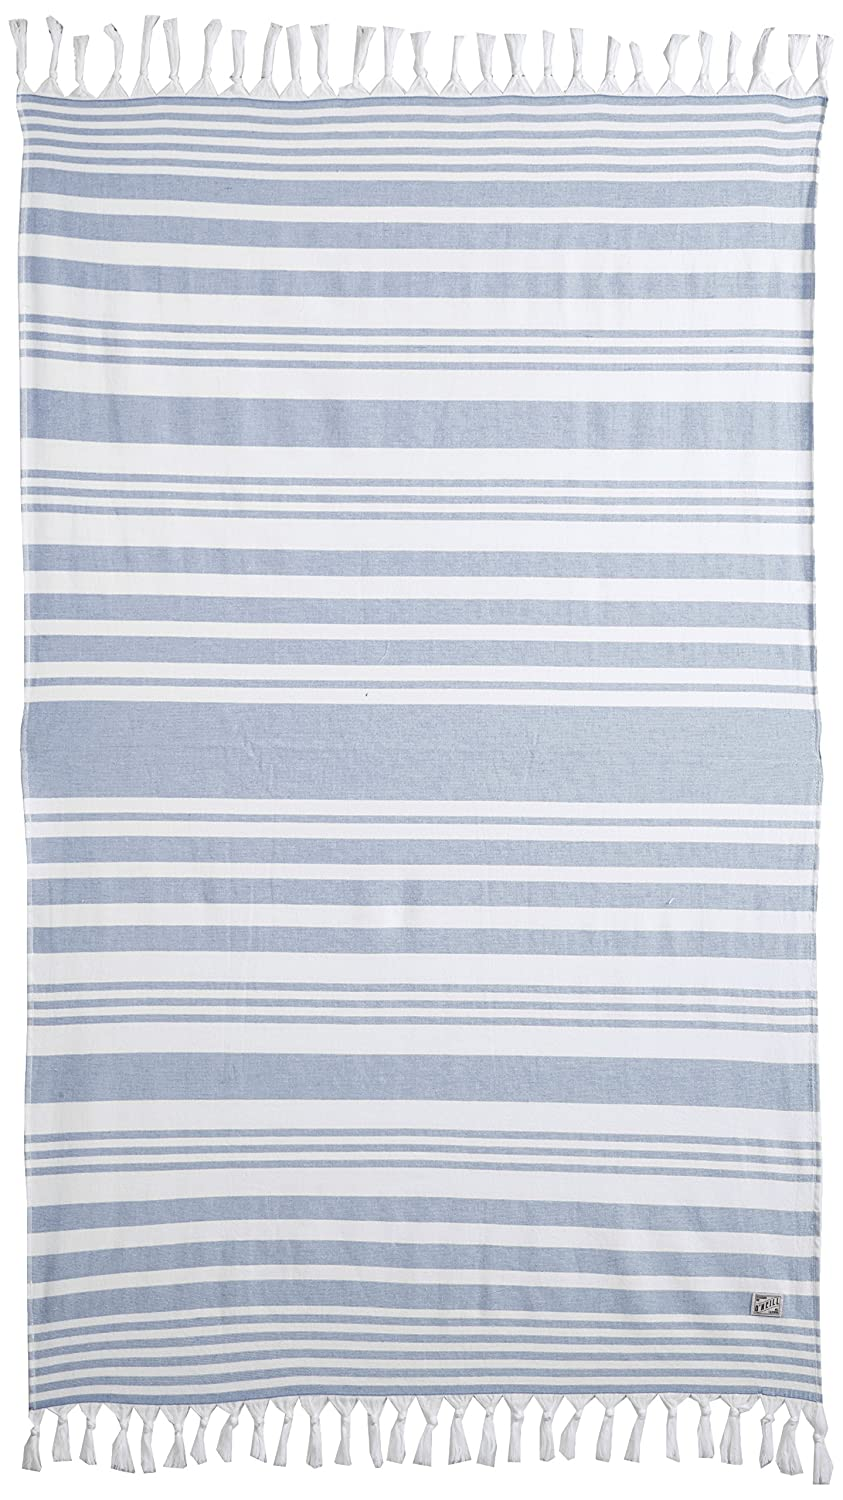 O'Neill Damen BW Shell Beach Towel Handtücher